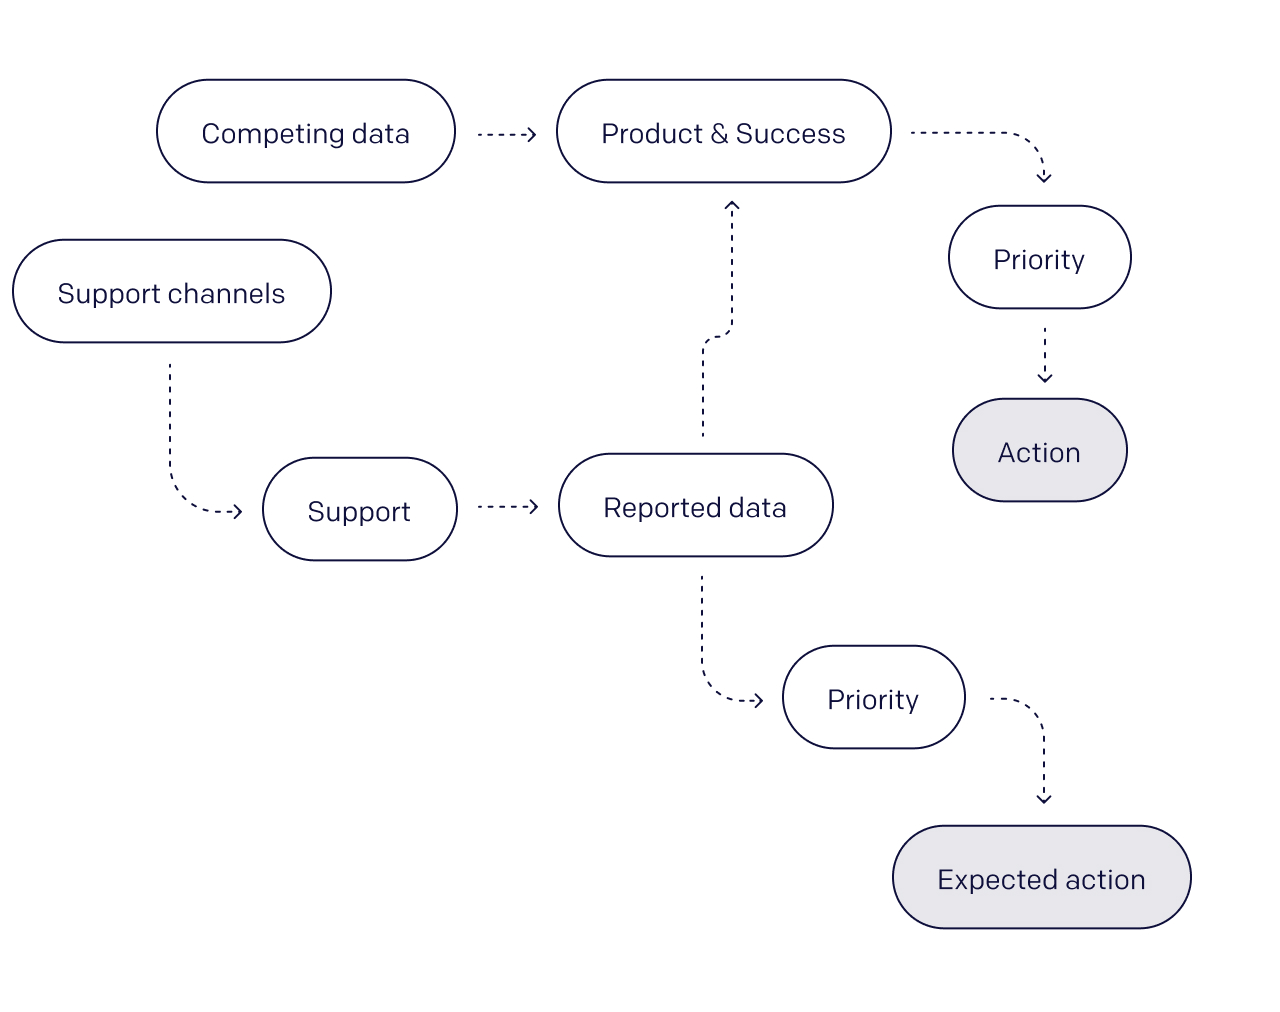 An image depicting how support teams and product teams commonly work off of disparate data sets which leads them to have differing priorities.